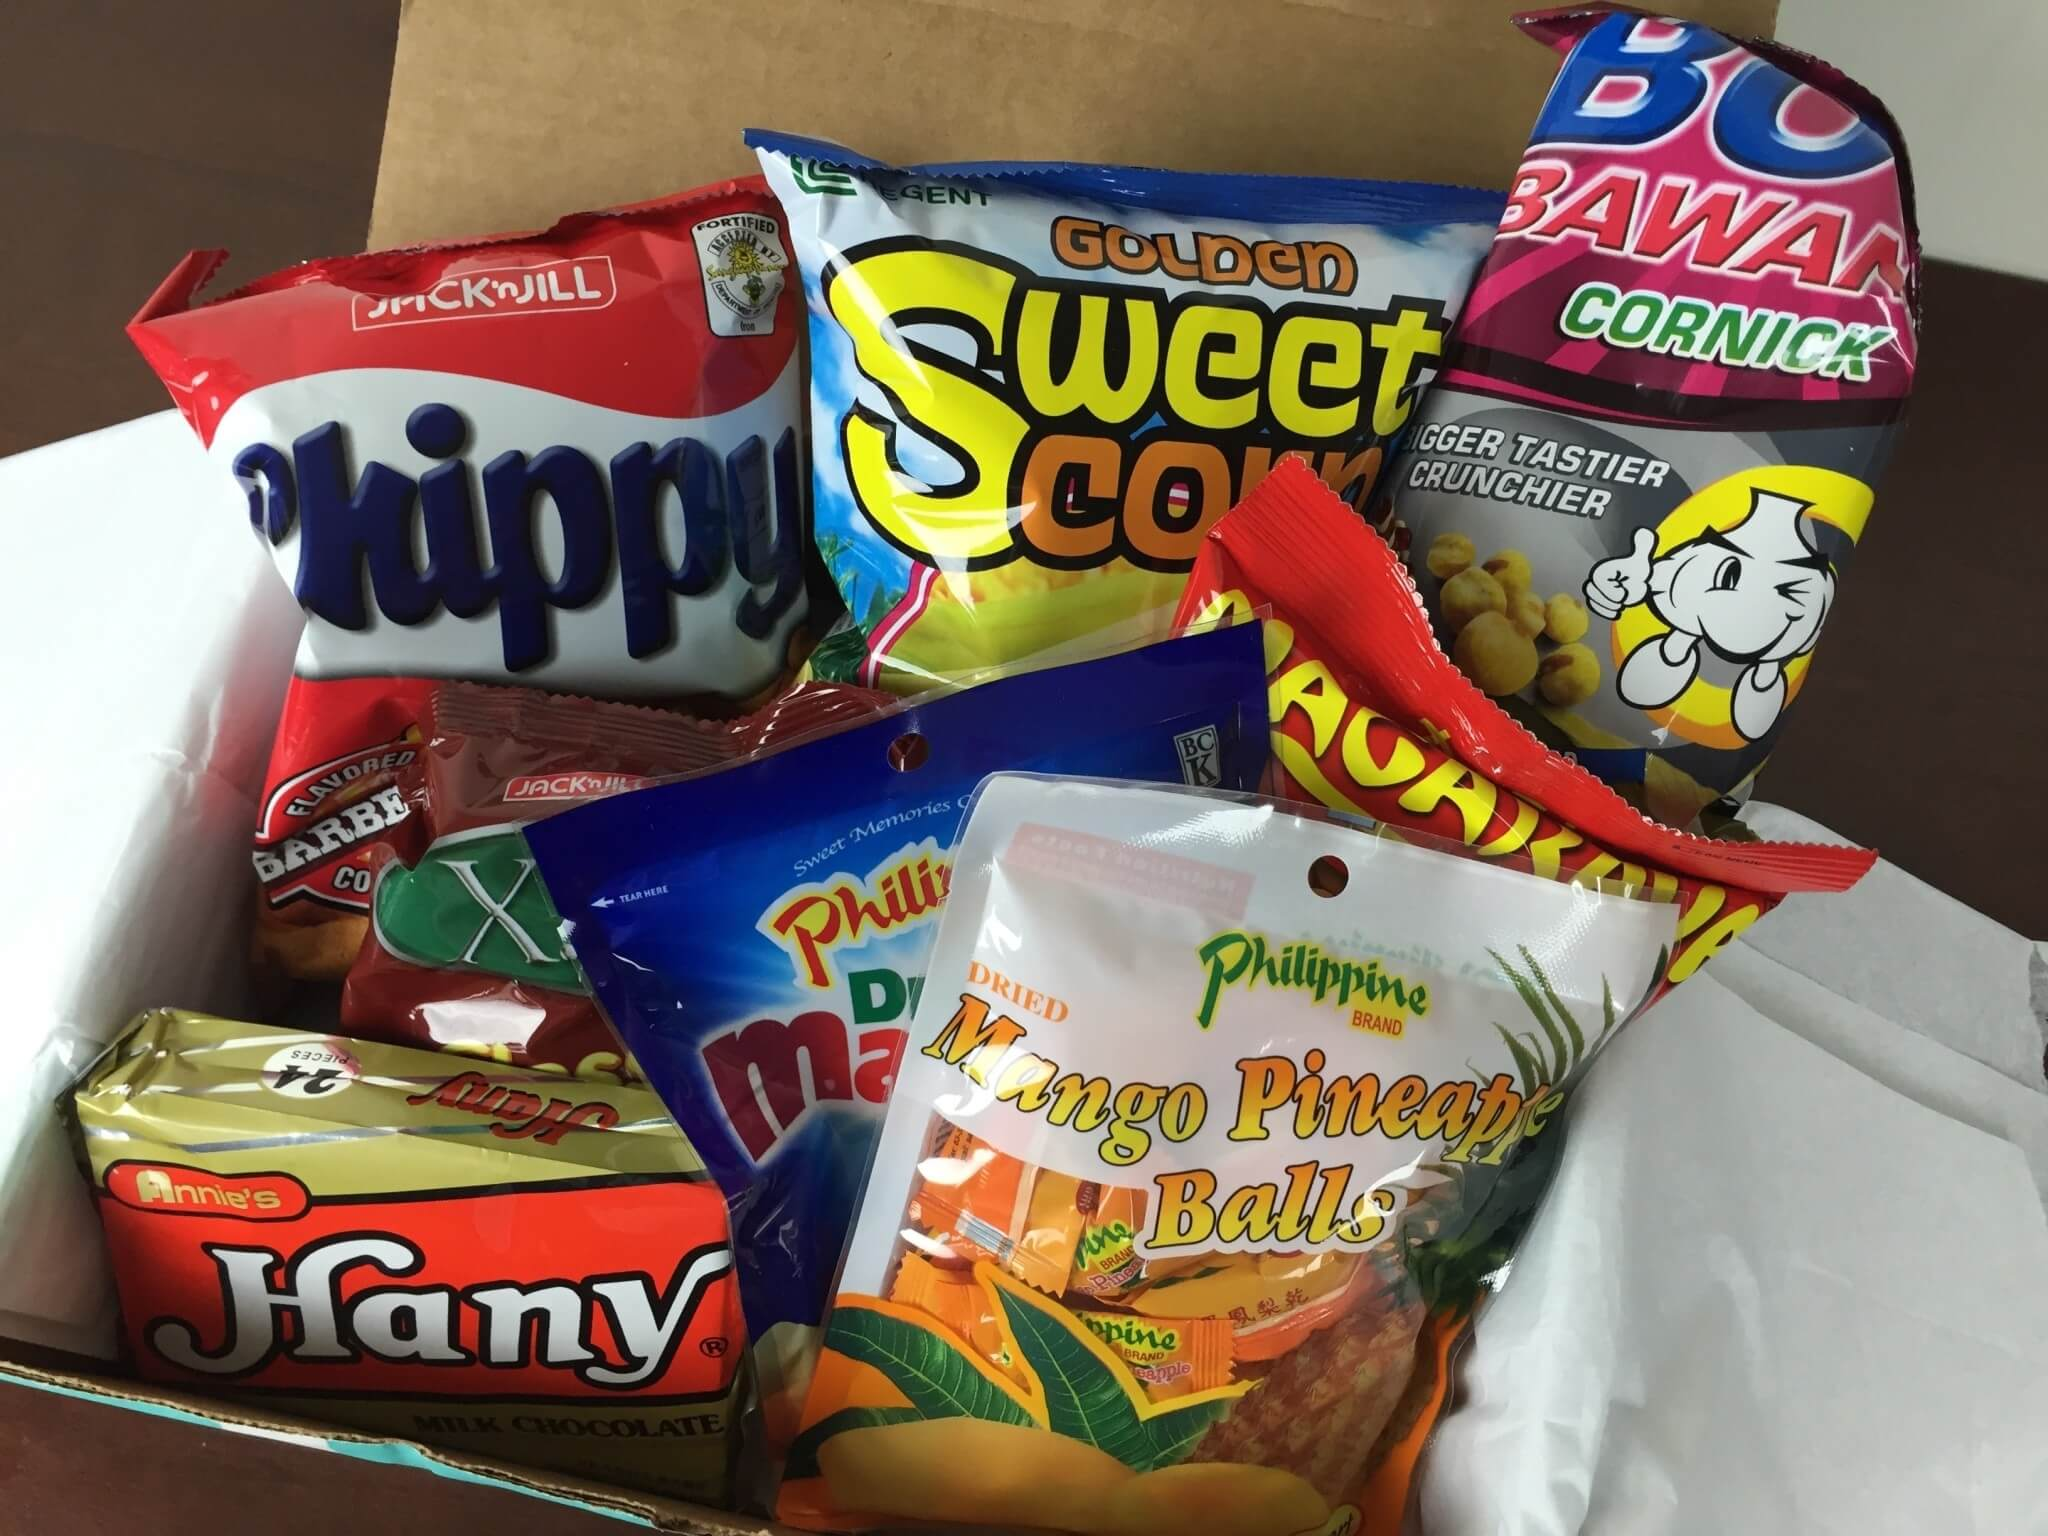 Treats Box January 2016 Review & Coupon Code – The Philippines